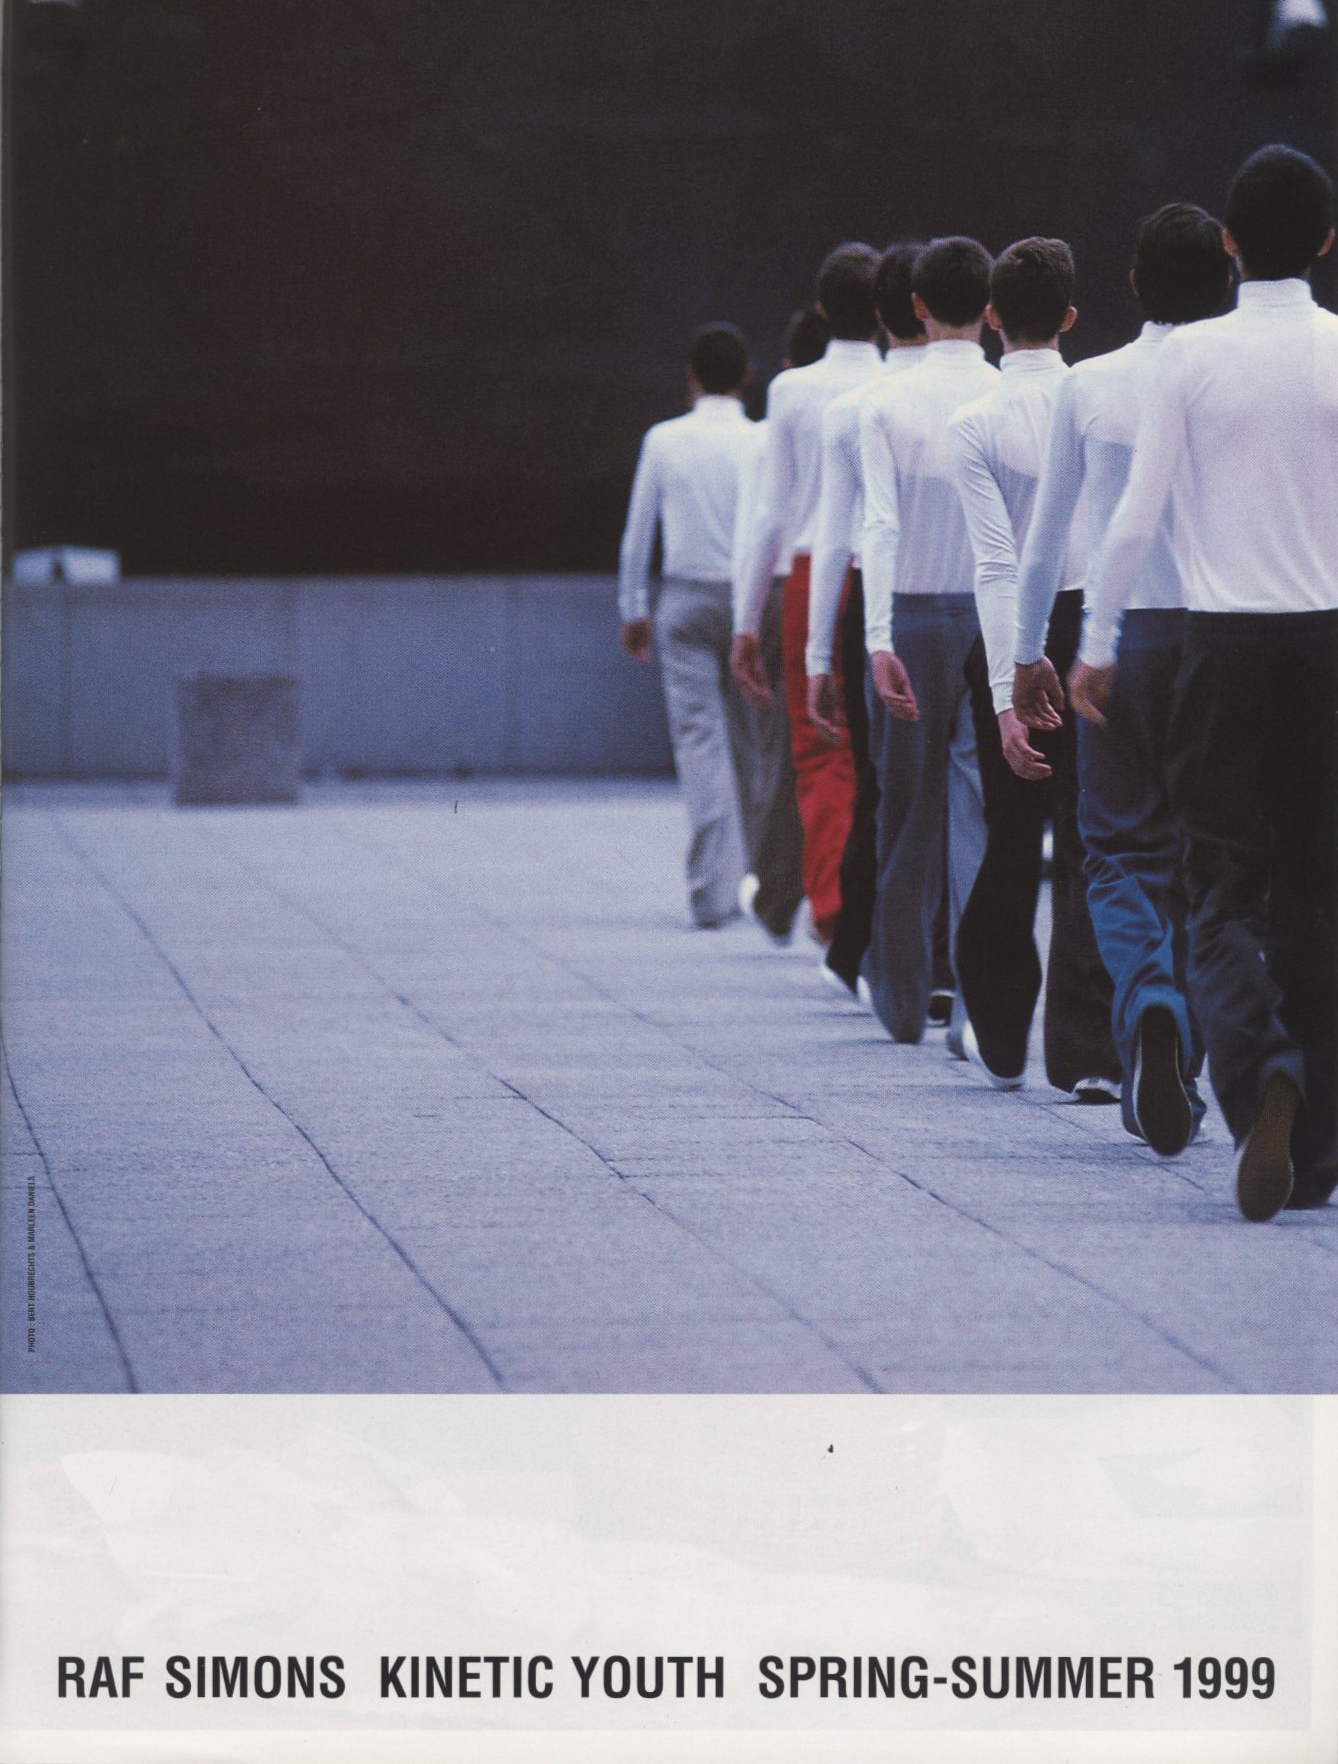 RAF SIMONS | KINETIC YOUTH | SPRING/SUMMER 1999 | PHOTOGRAPHY BERT HOUBRECHTS & MARLEENE DANIELS